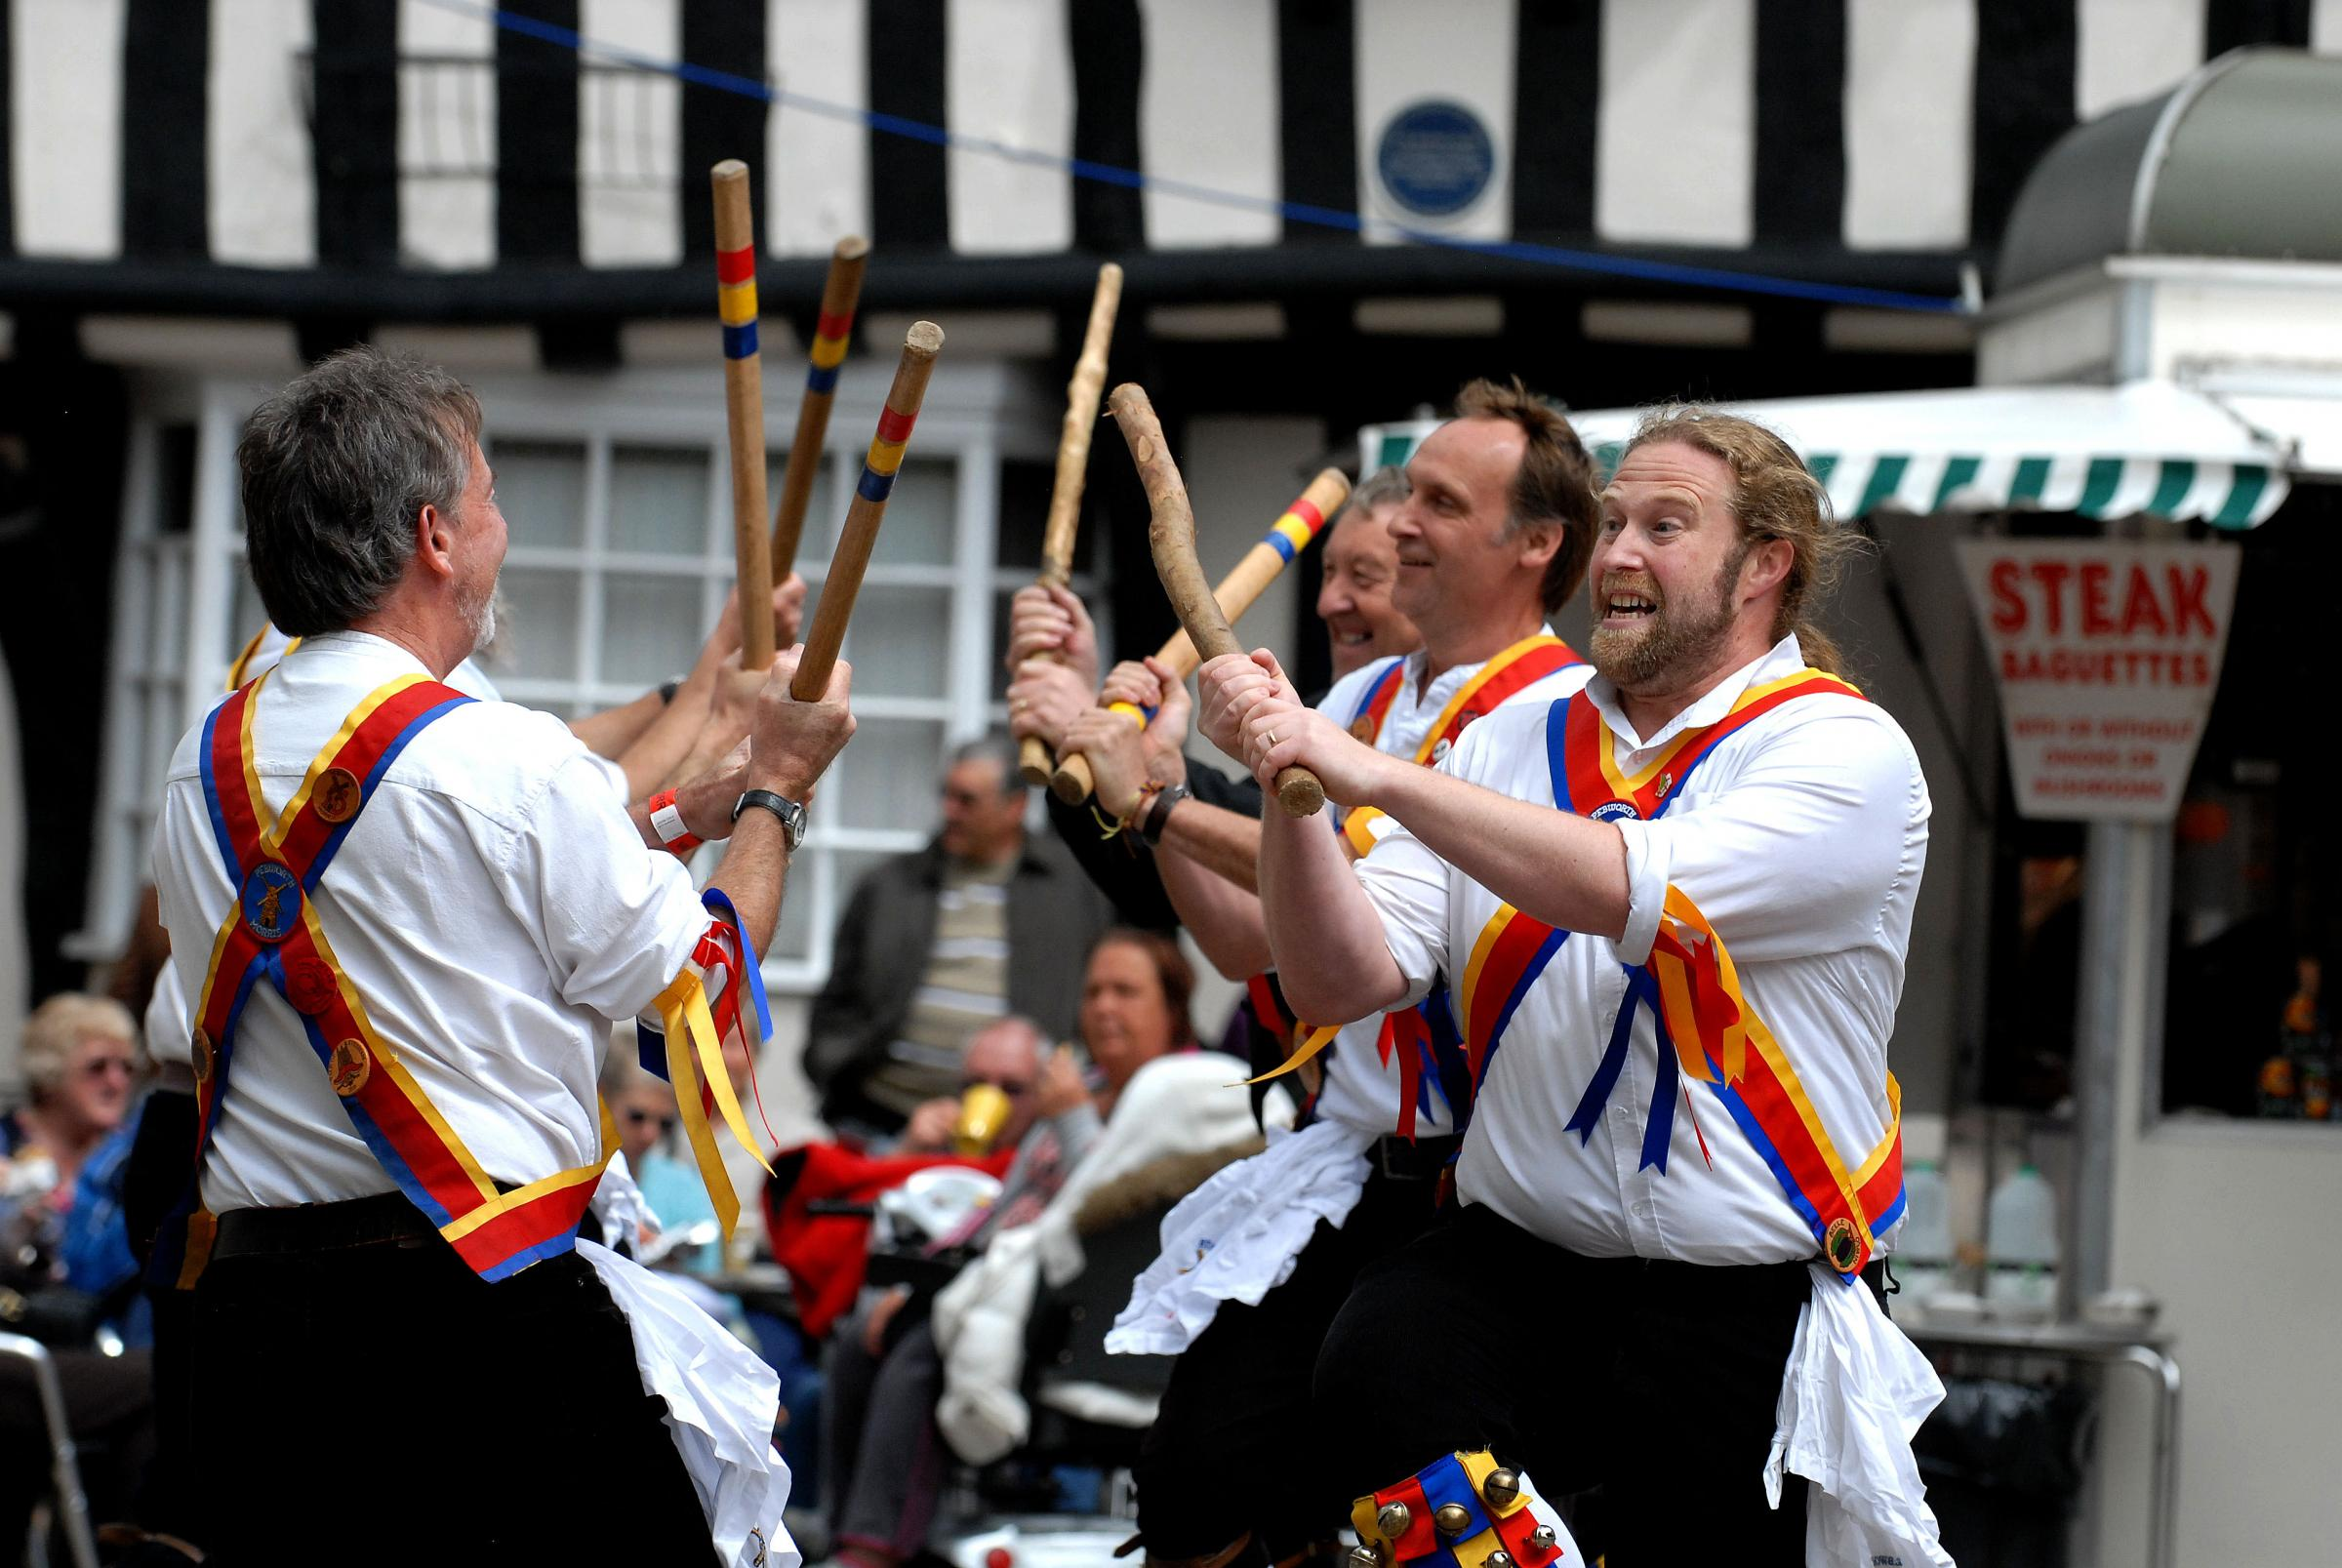 BELLS: Pebworth Morris Men in full flow at the Vale of Evesham Festival Weekend, The National Morris Weekend, in 2012.